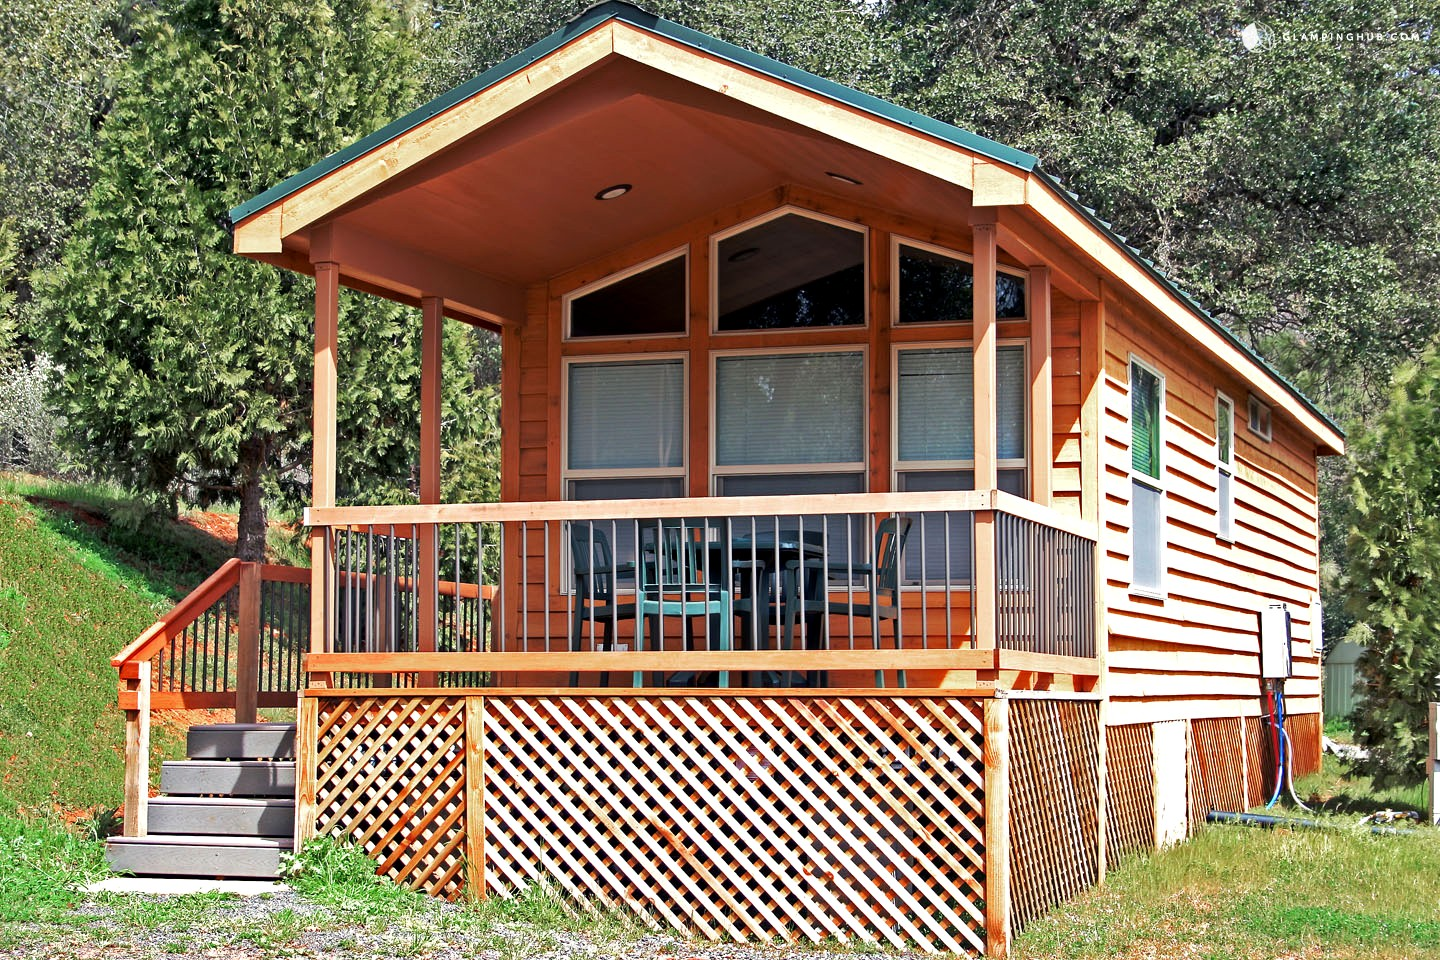 Cabin rental near yosemite national park for Groveland ca cabin rentals